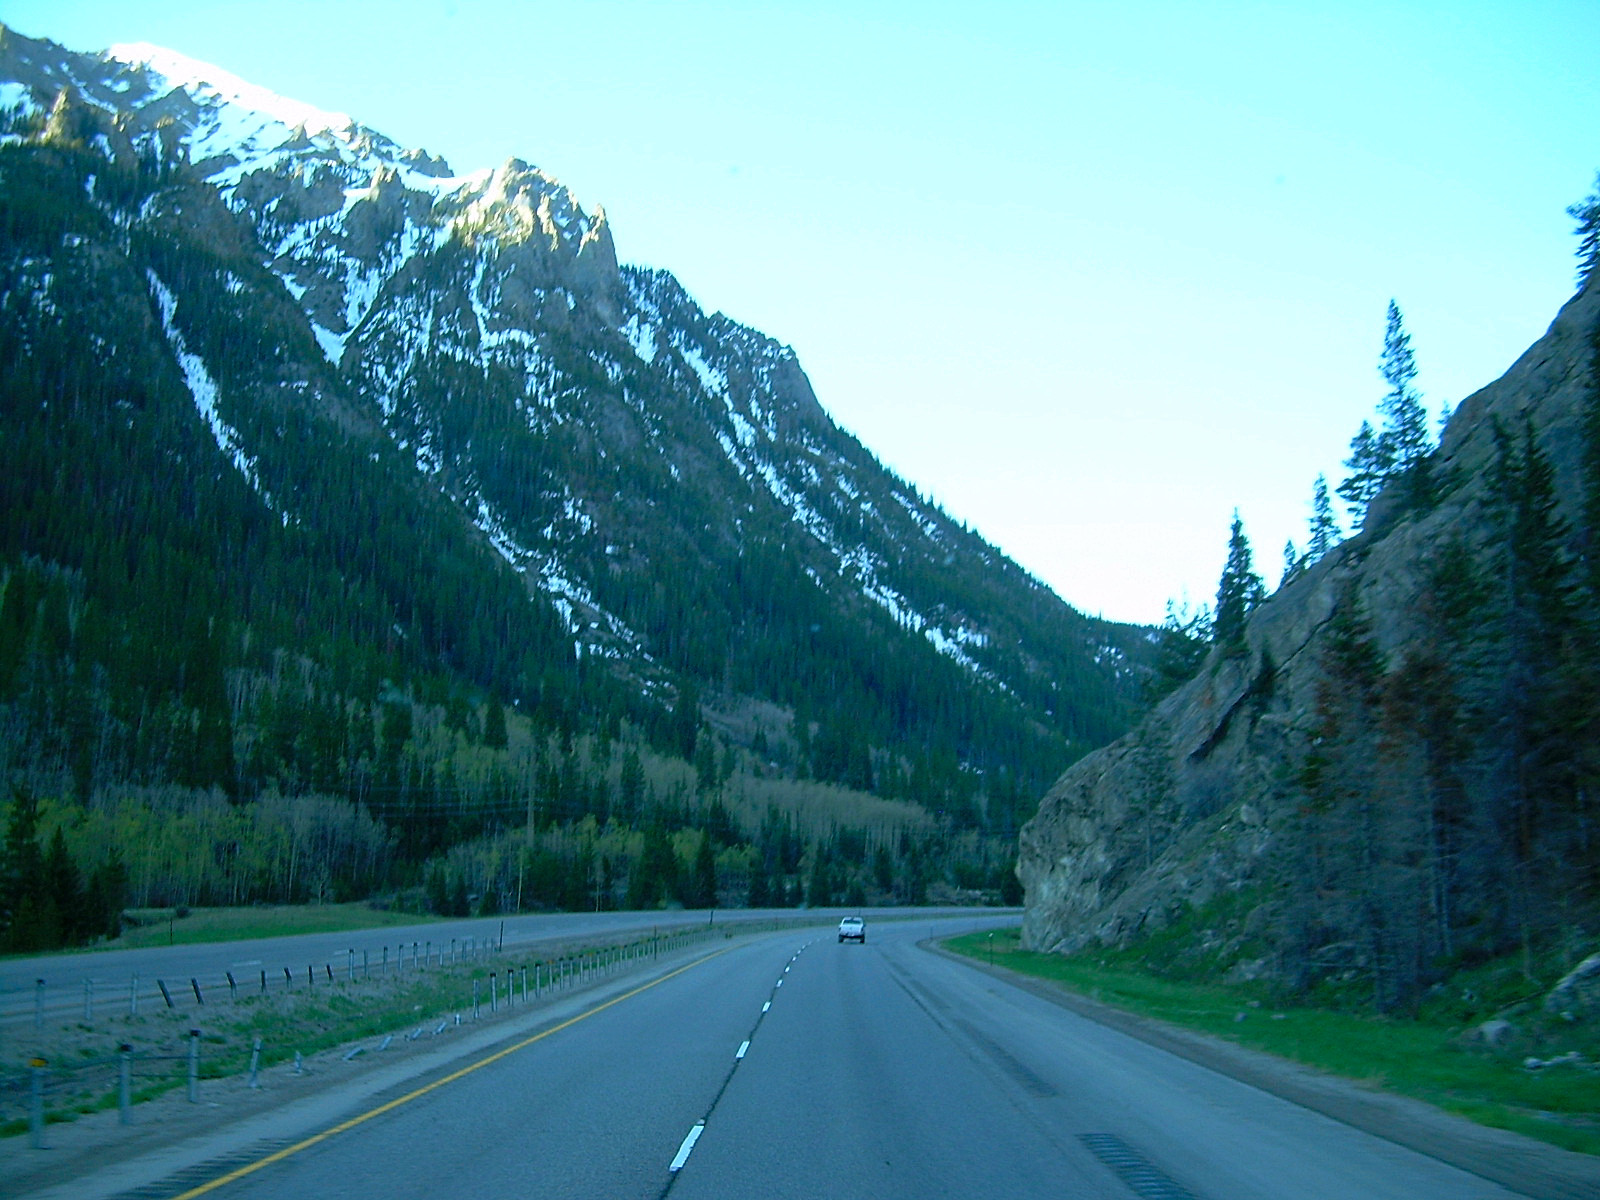 Outside the Eisenhower Tunnel exit, in Colarado, USA